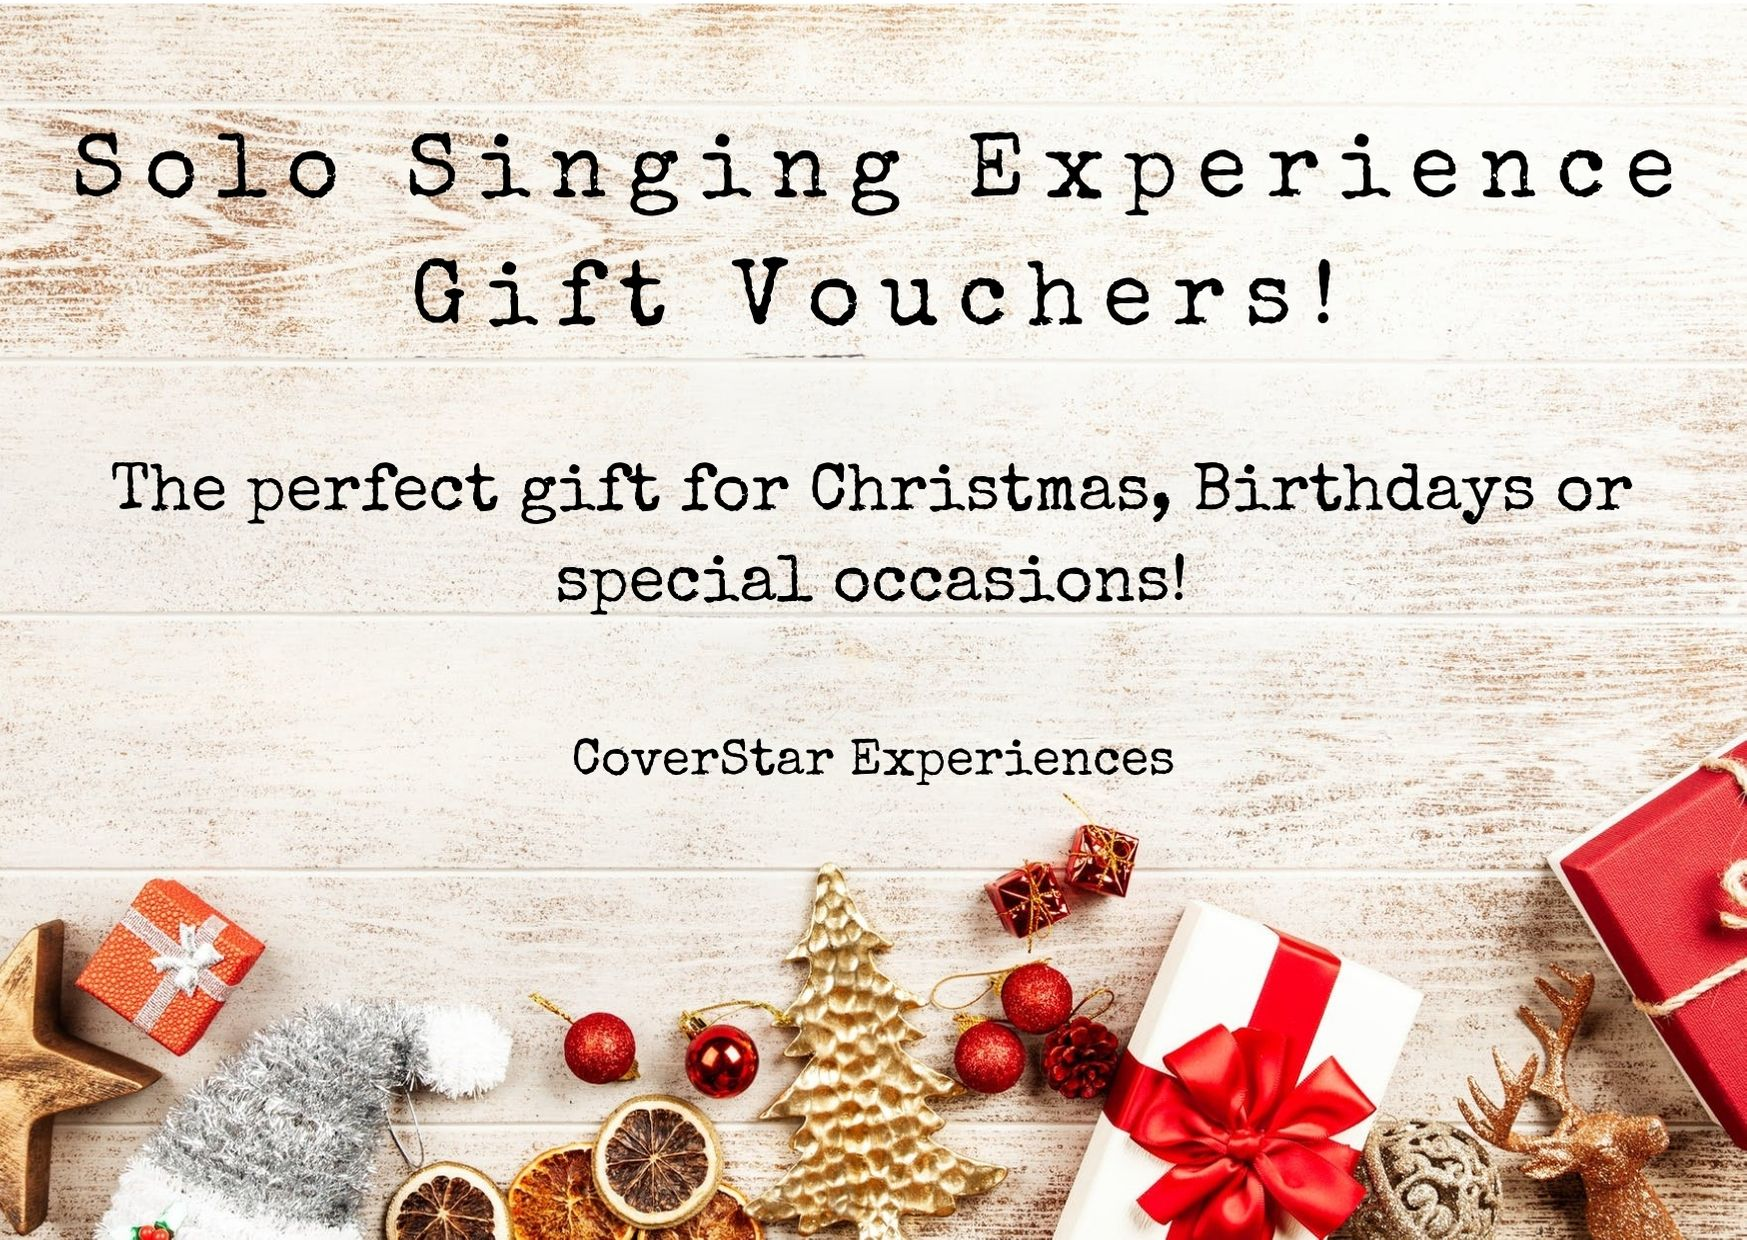 Solo Experience Gift Vouchers